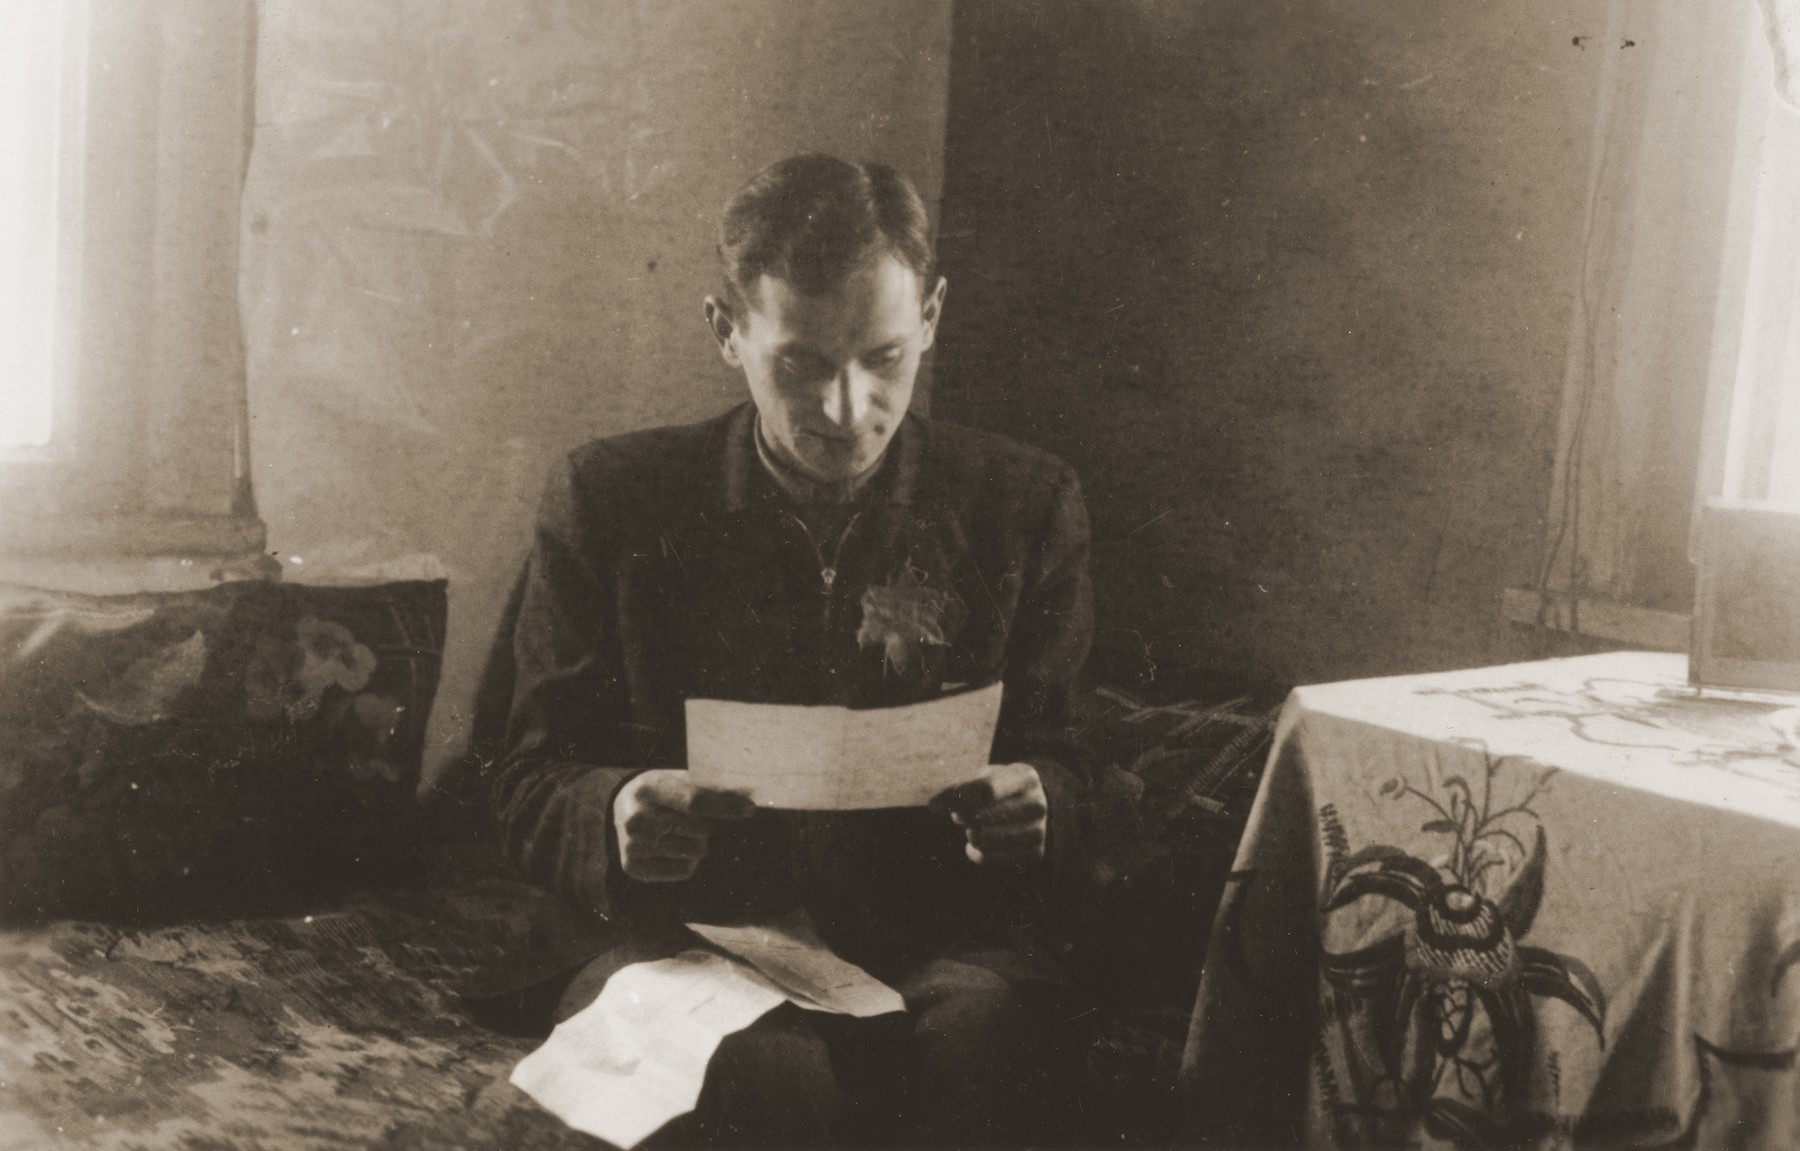 Moshe Musel reads a letter from his wife, Pola, in his room in the Kovno ghetto.  He received this letter one month after Pola escaped to the Aryan side.  Her rescuer, Mikolas Simalis, brought letters back and forth until the ghetto was sealed more tightly in March, 1944.  The photographer, David Ratner, was a friend and a member of the Communist underground.